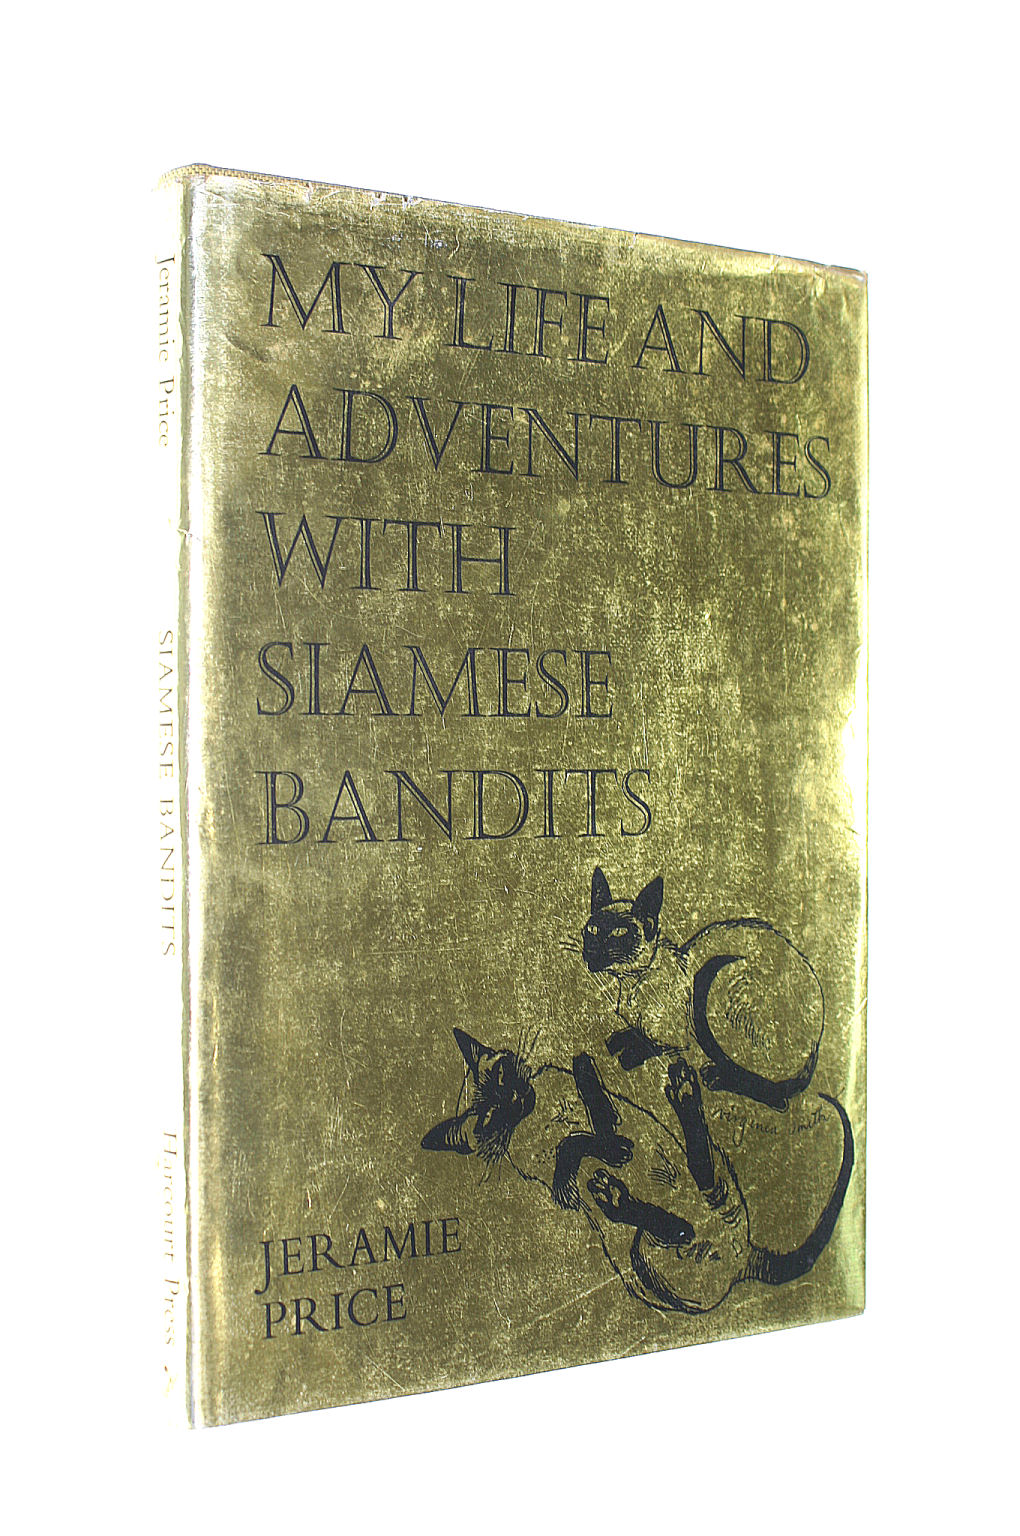 Image for My Life And Adventures With Siamese Bandits